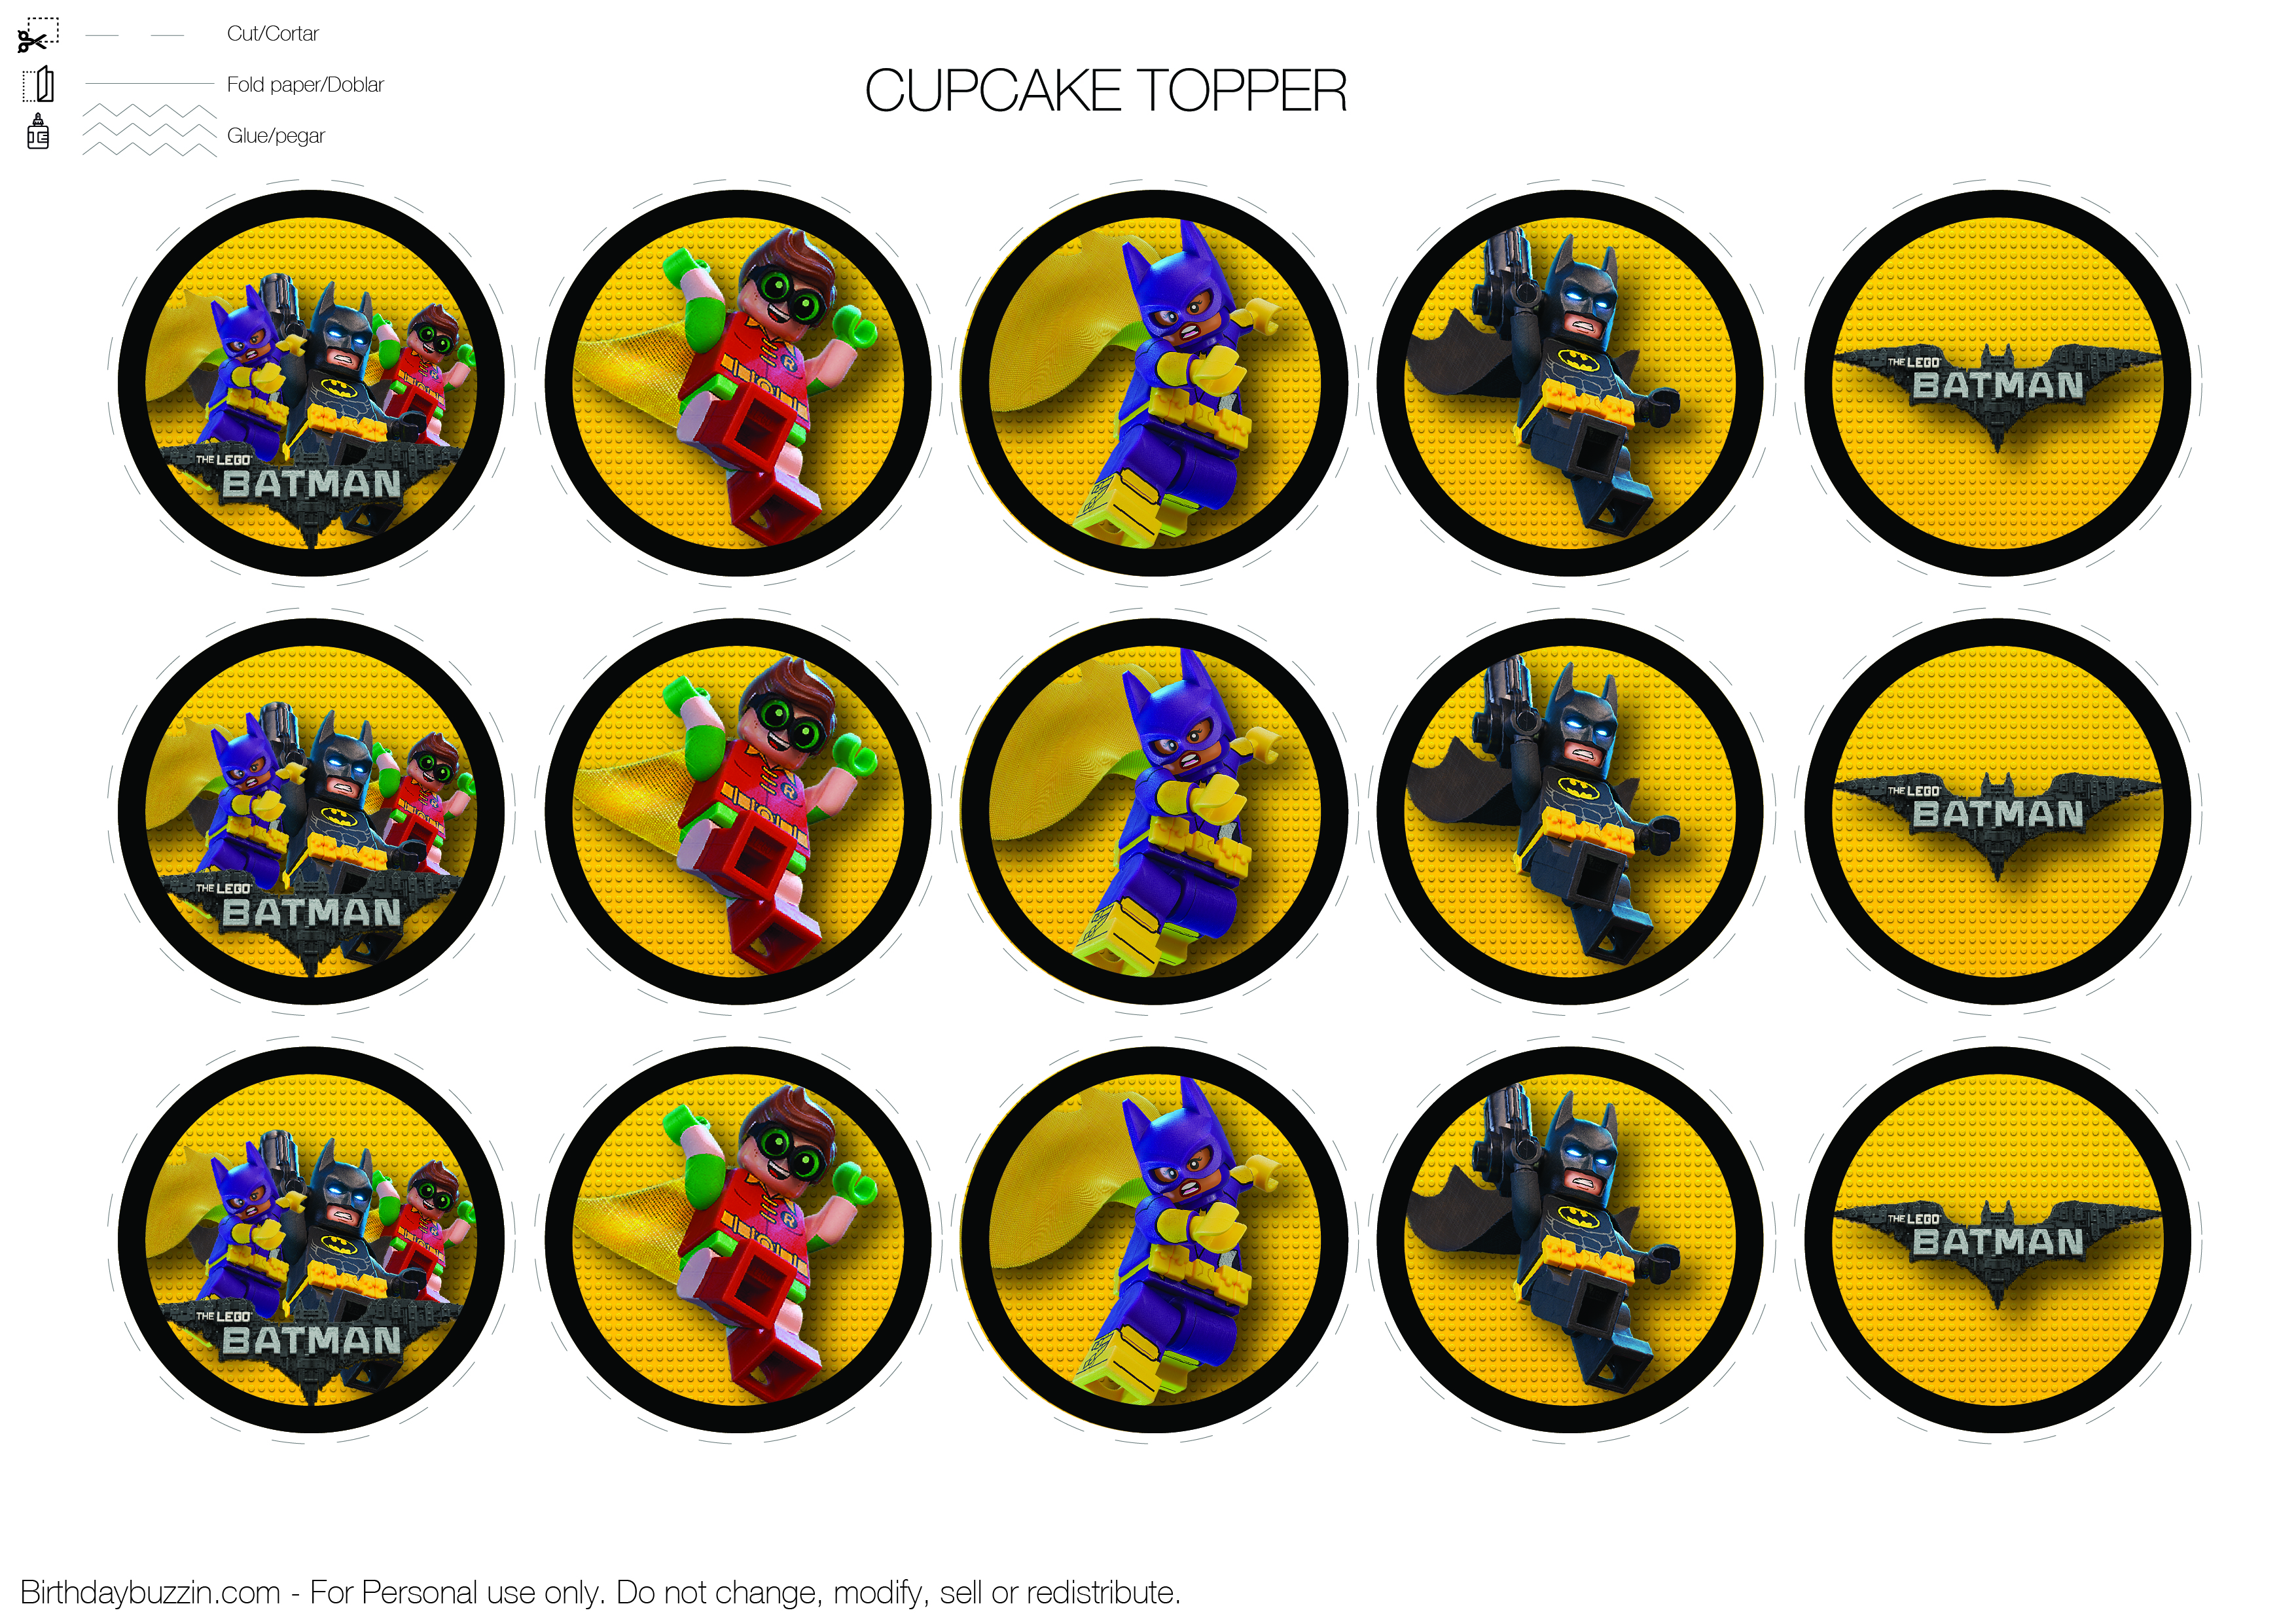 graphic about Batman Cupcake Toppers Printable named Lego-Batman-Cupcake-Topper Birthday Buzzin